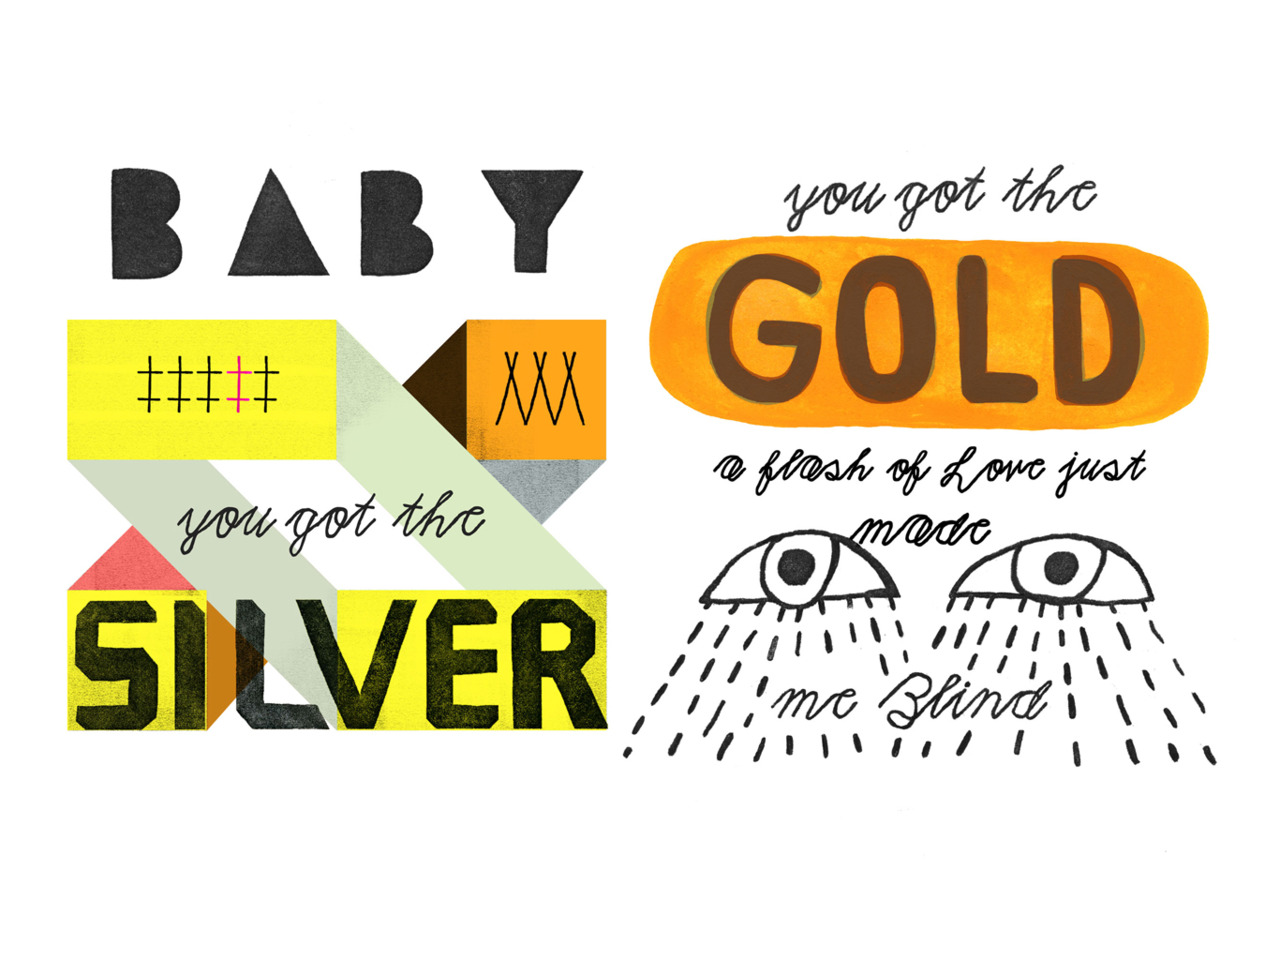 Song lyric taken from The Rolling Stones' Silver and Gold Print available in the shop